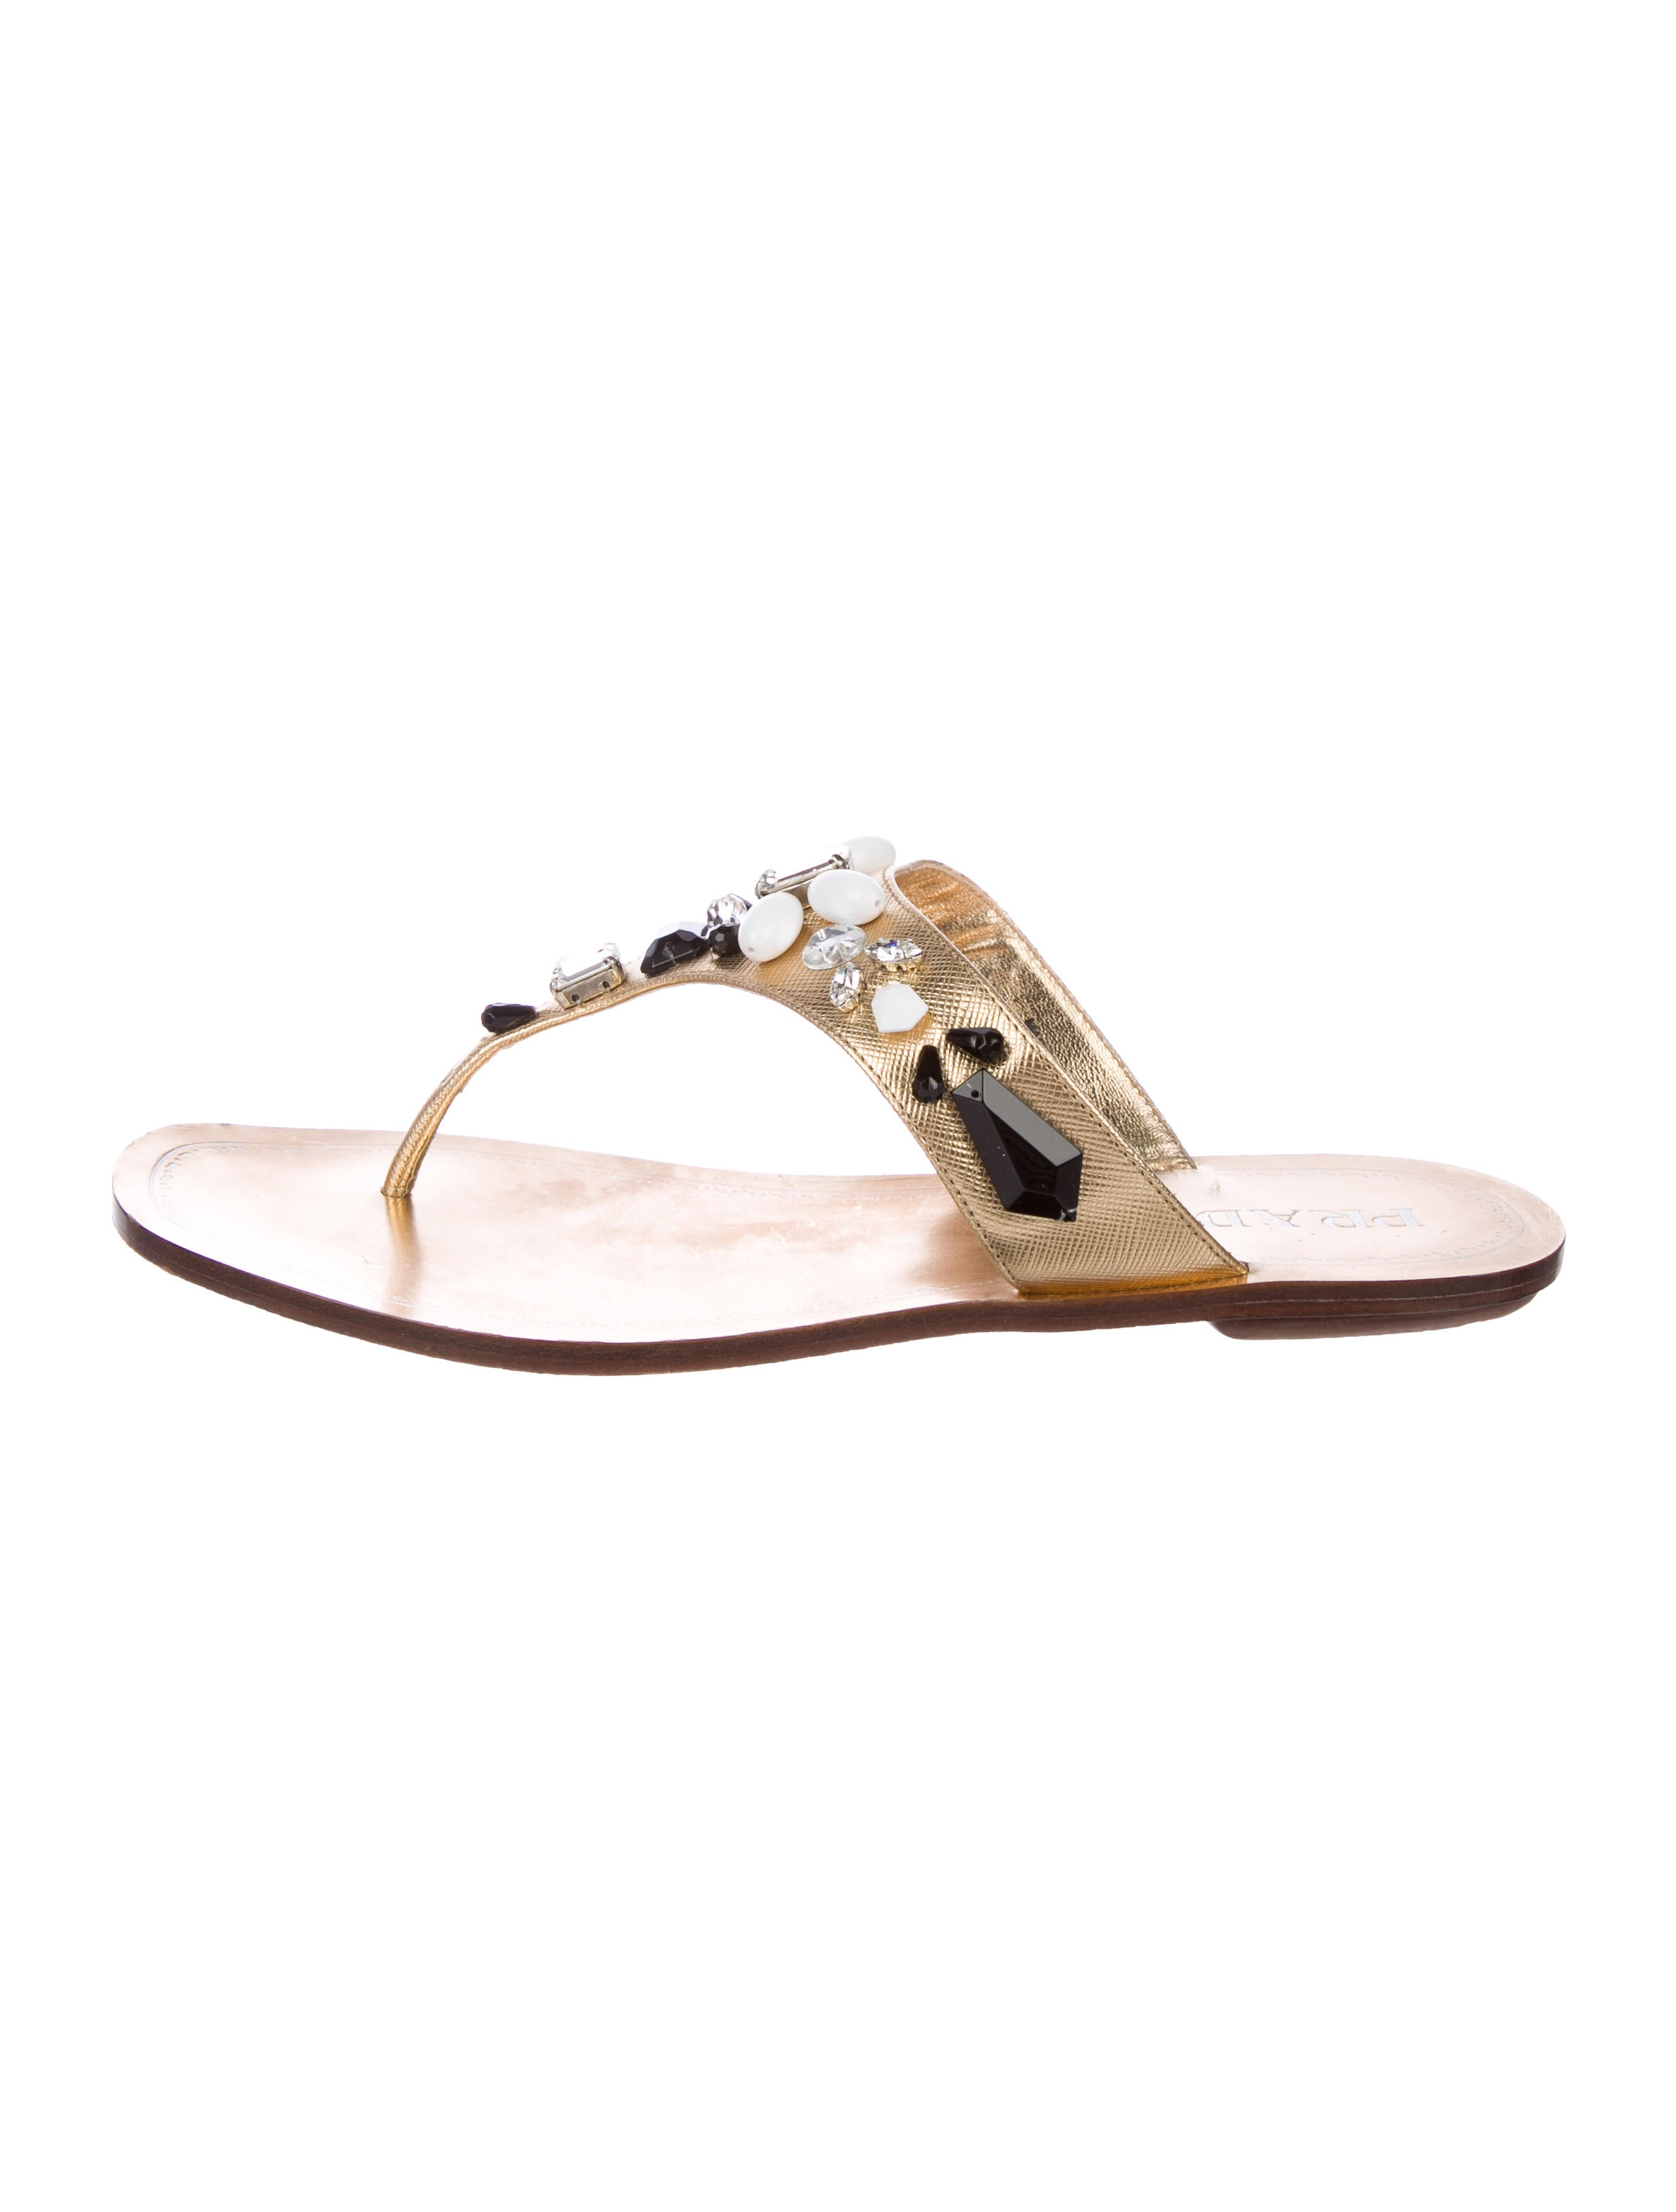 Prada Embellished Thong Sandals buy cheap real visa payment for sale low price fee shipping for sale 7ggXj